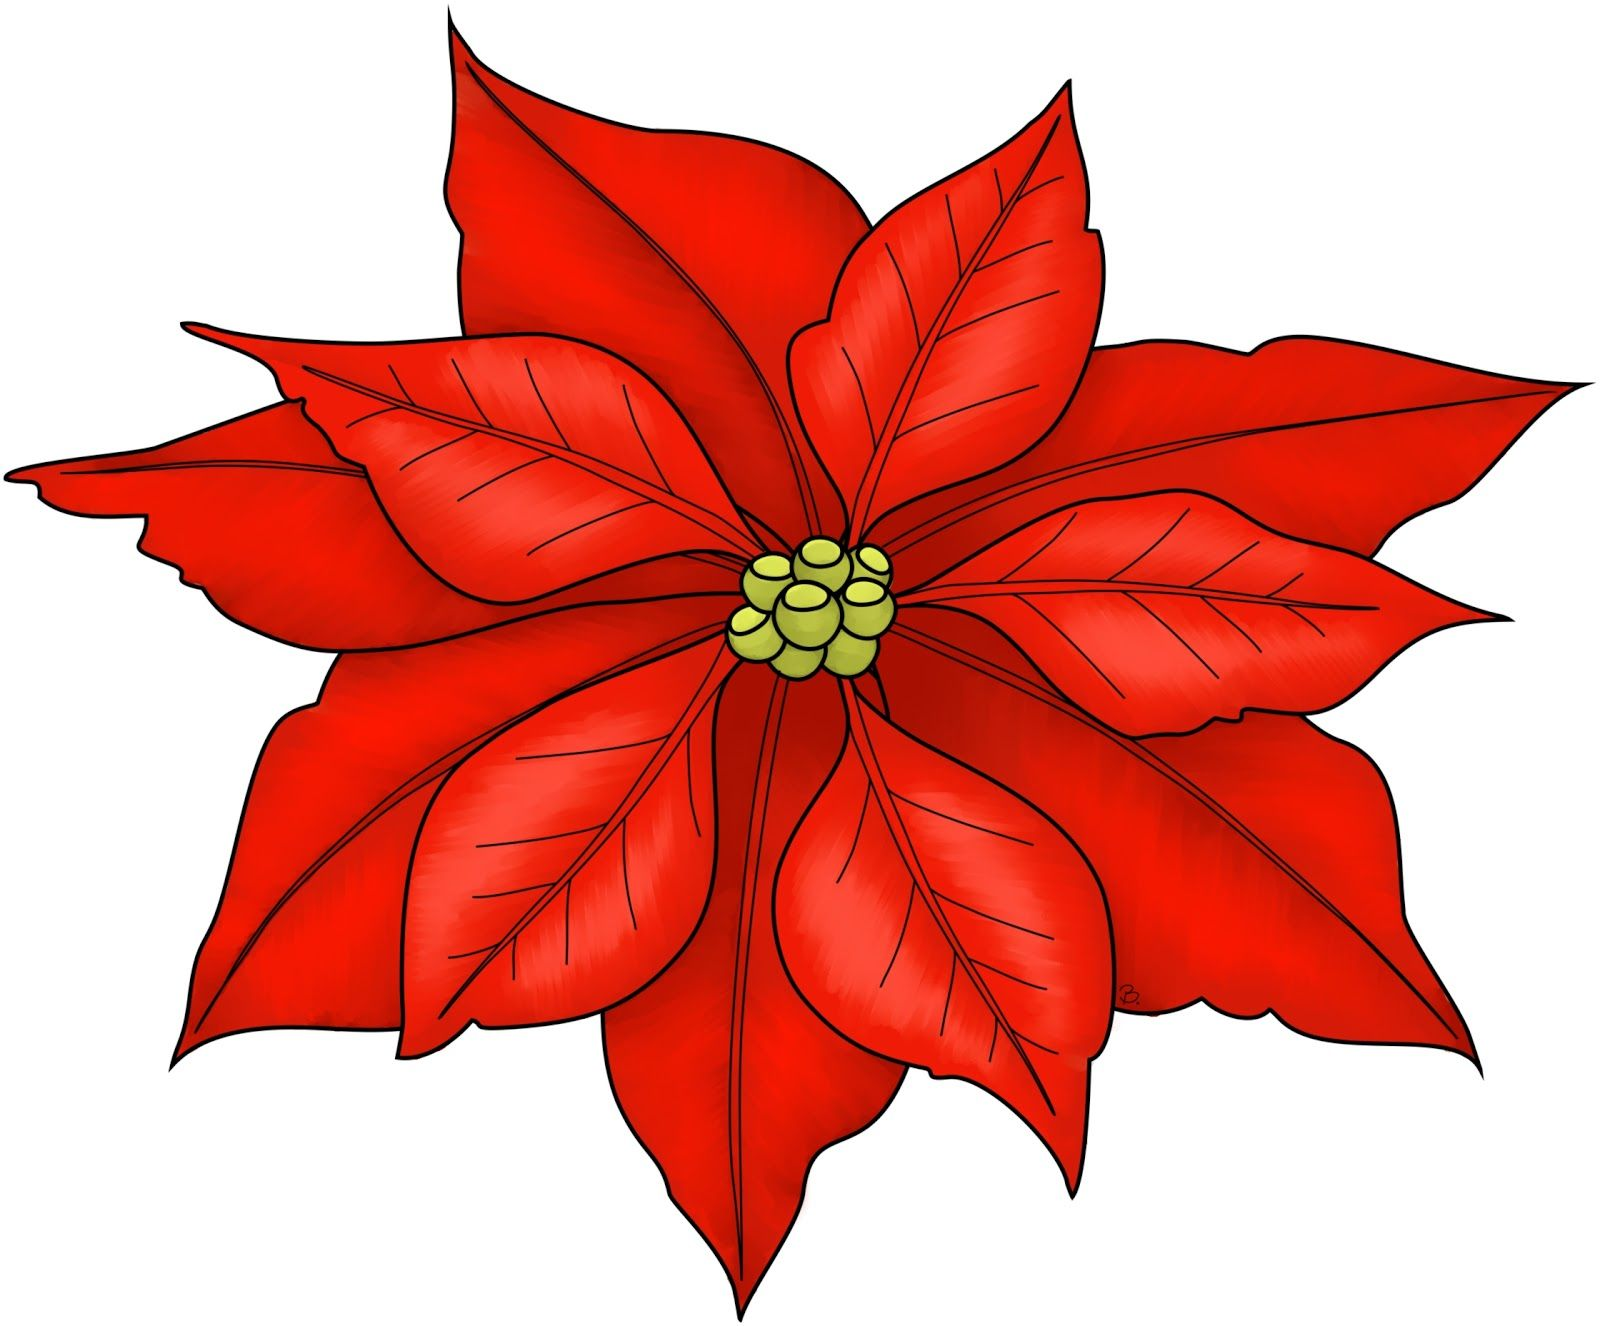 celebrate this day by reading the beautiful story the legend of the rh pinterest com poinsettia clipart free poinsettia clip art flowers